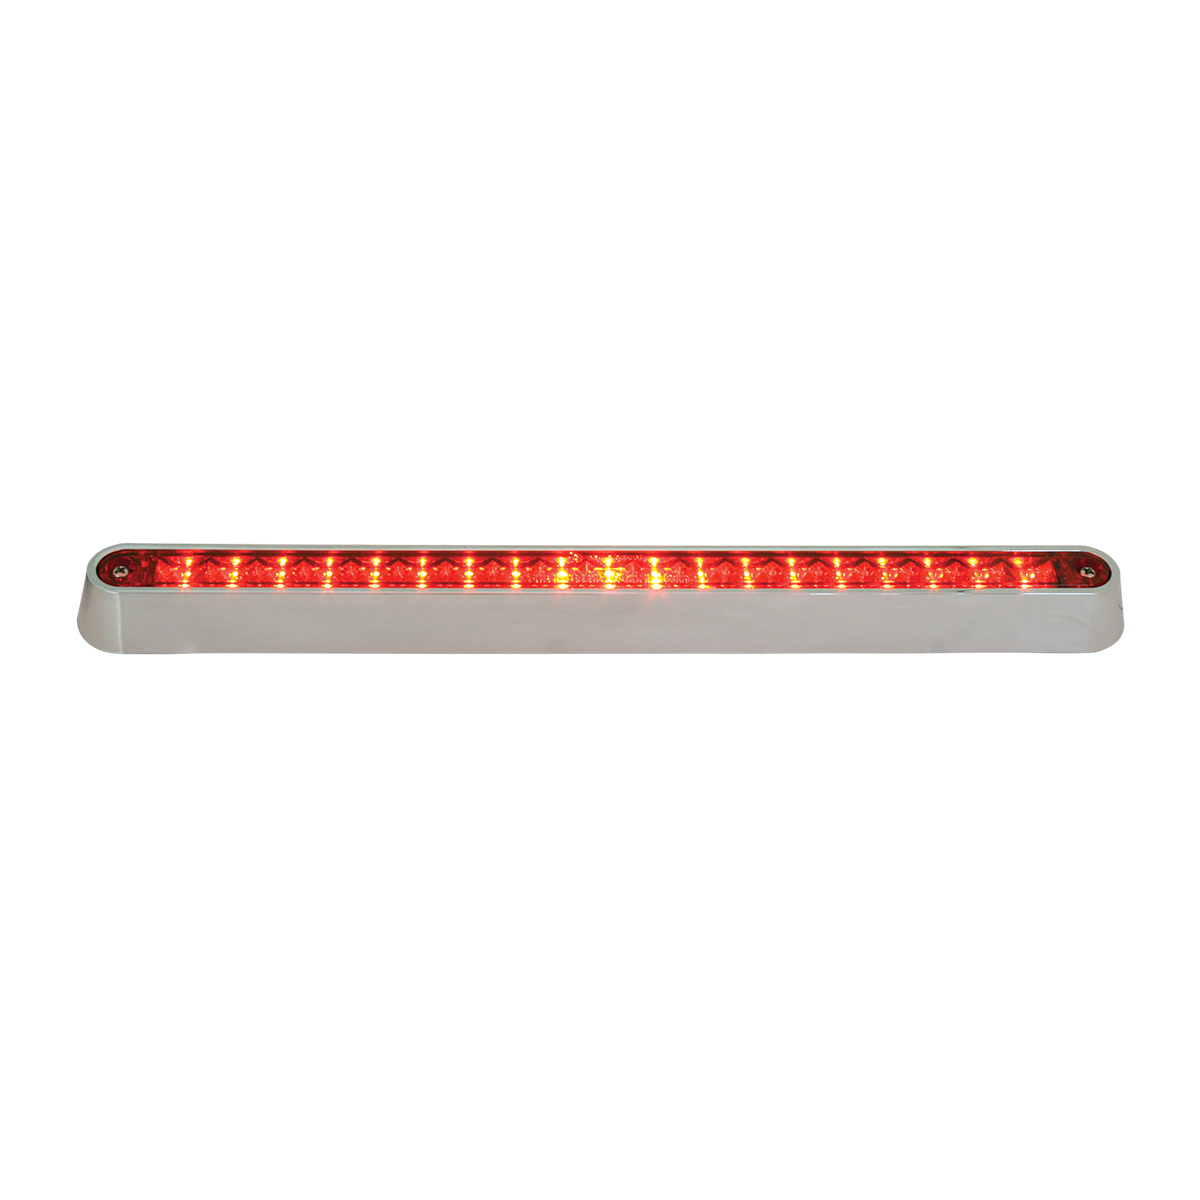 "76295 12"" Surface Mount Light Bar with Chrome Plastic Base"